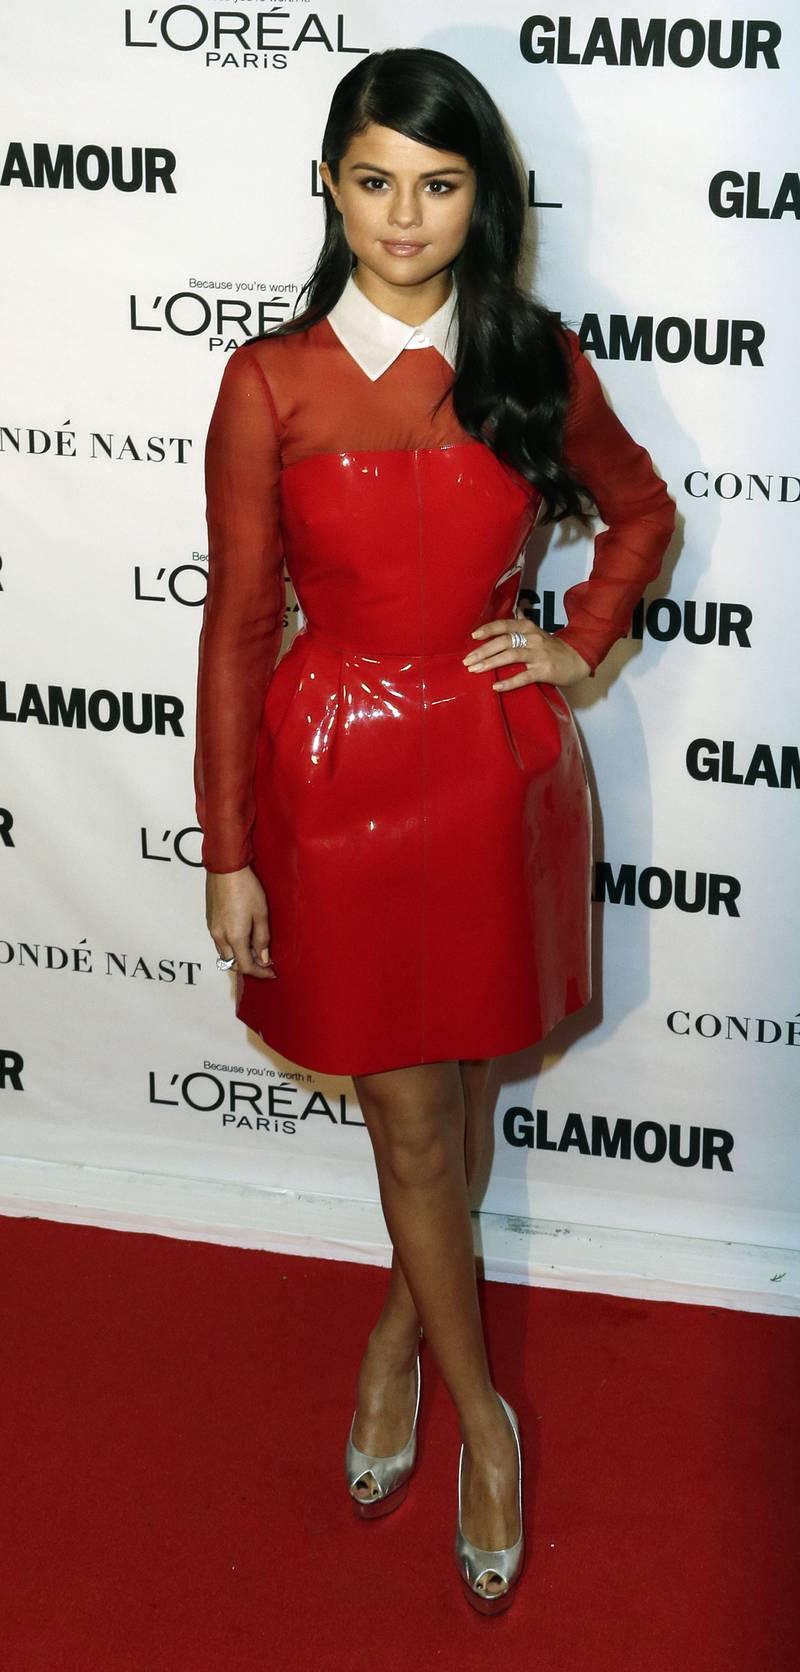 epa05018528 US singer Selena Gomez poses for photos during the 25th Annual Glamour Women of the Year Awards at Carnegie Hall in New York, New York, USA, 09 November 2015.  EPA/JASON SZENES